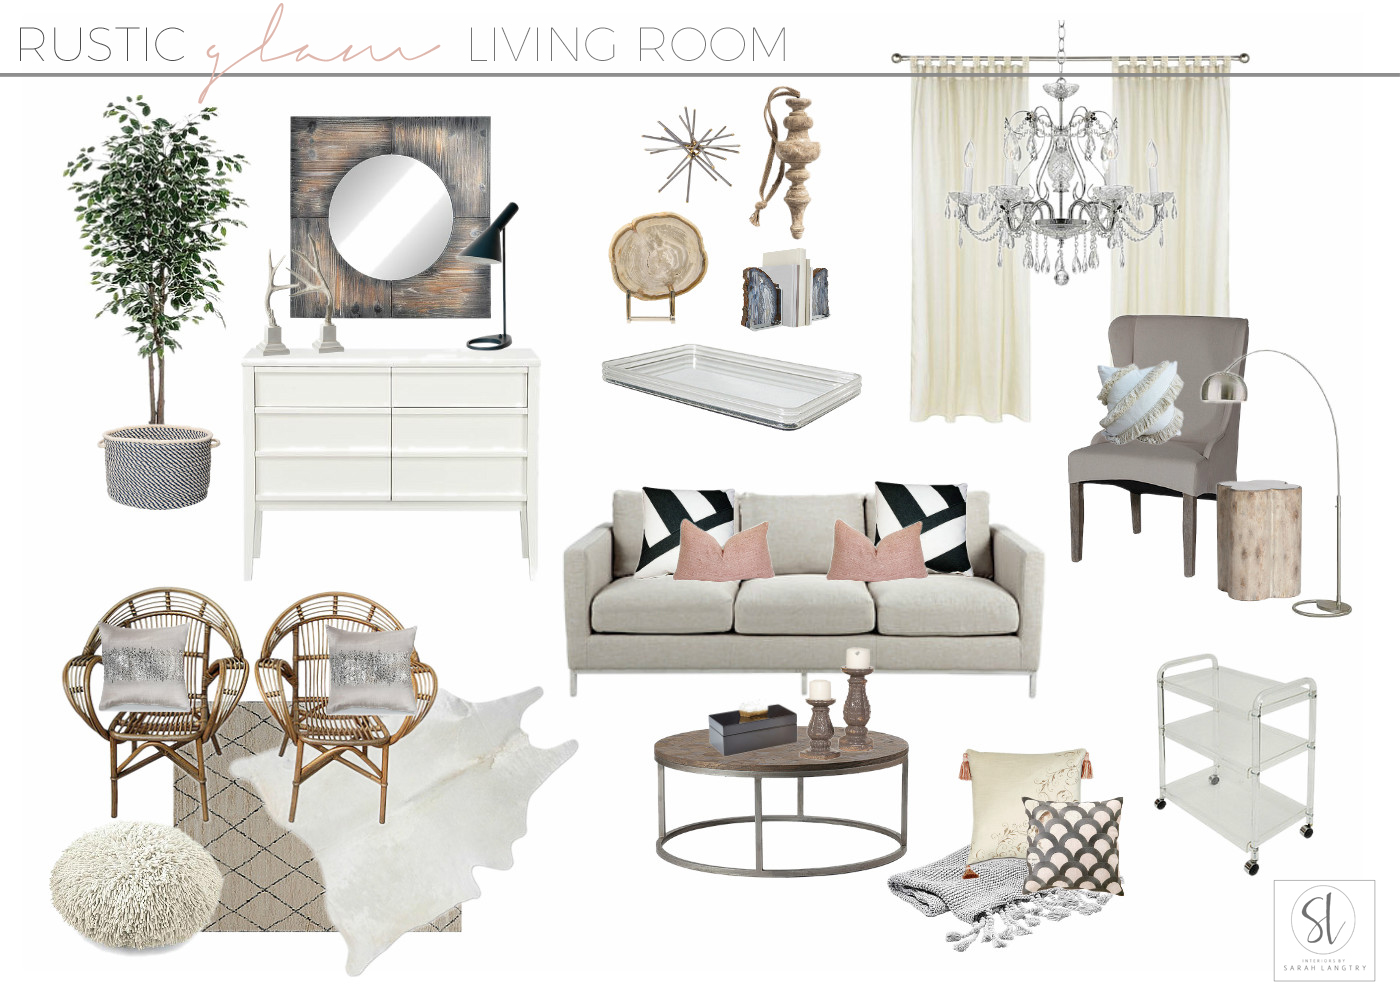 Rustic Glam Living Room